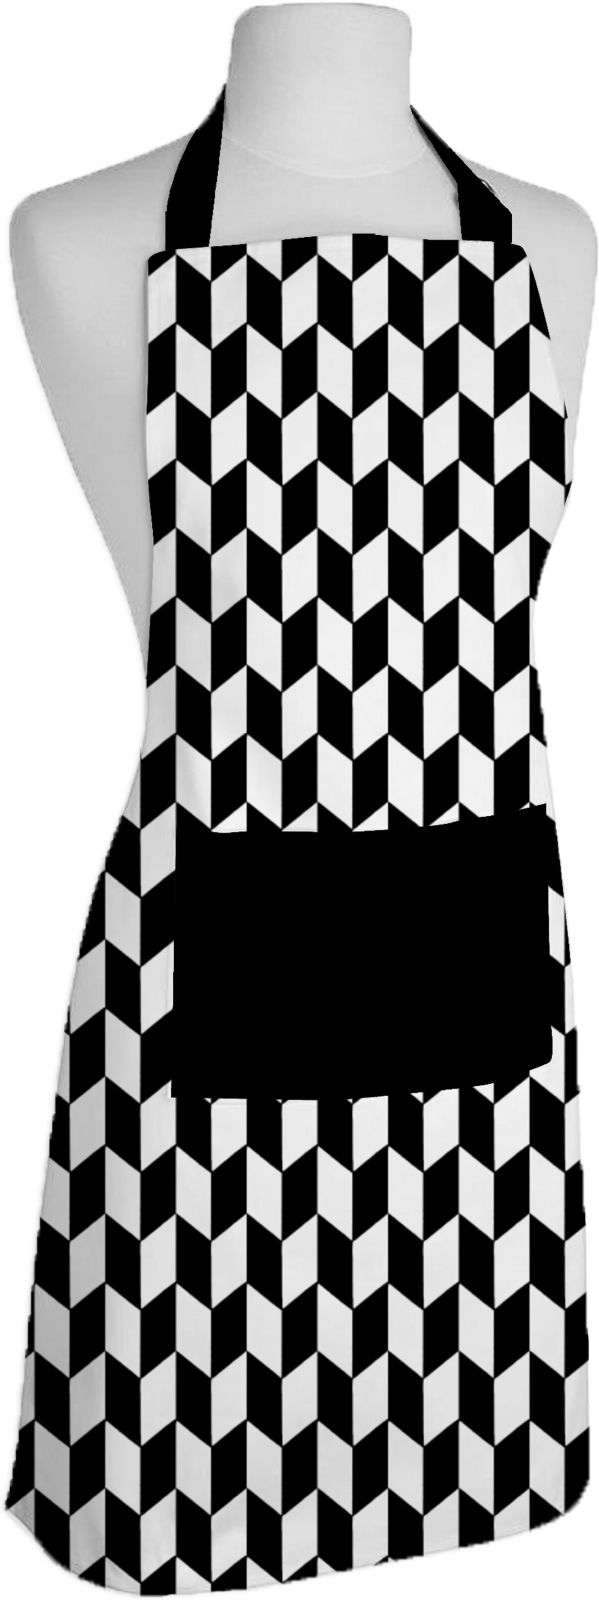 Airwill Cotton Home Use Apron - Free Size (Black, White, Single Piece)